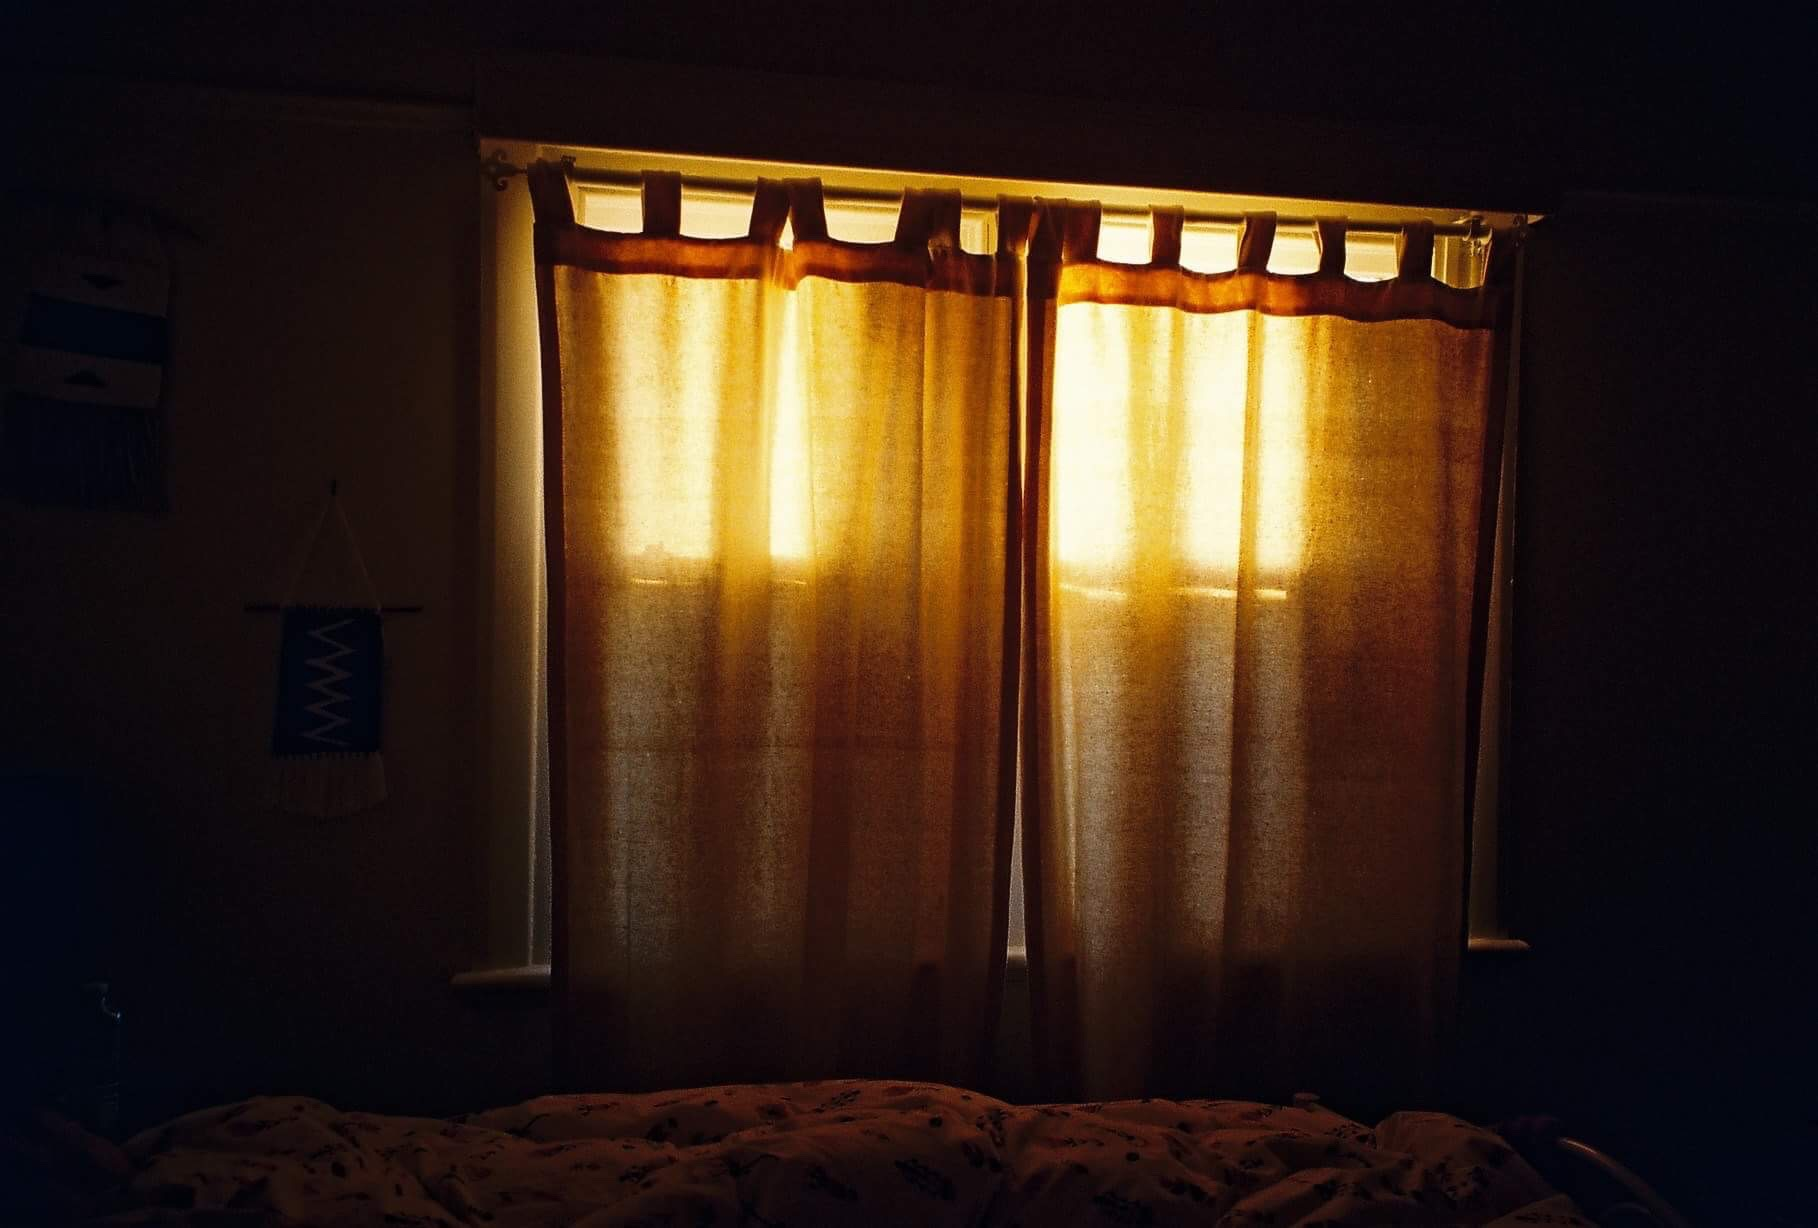 The light shining through the bedroom window